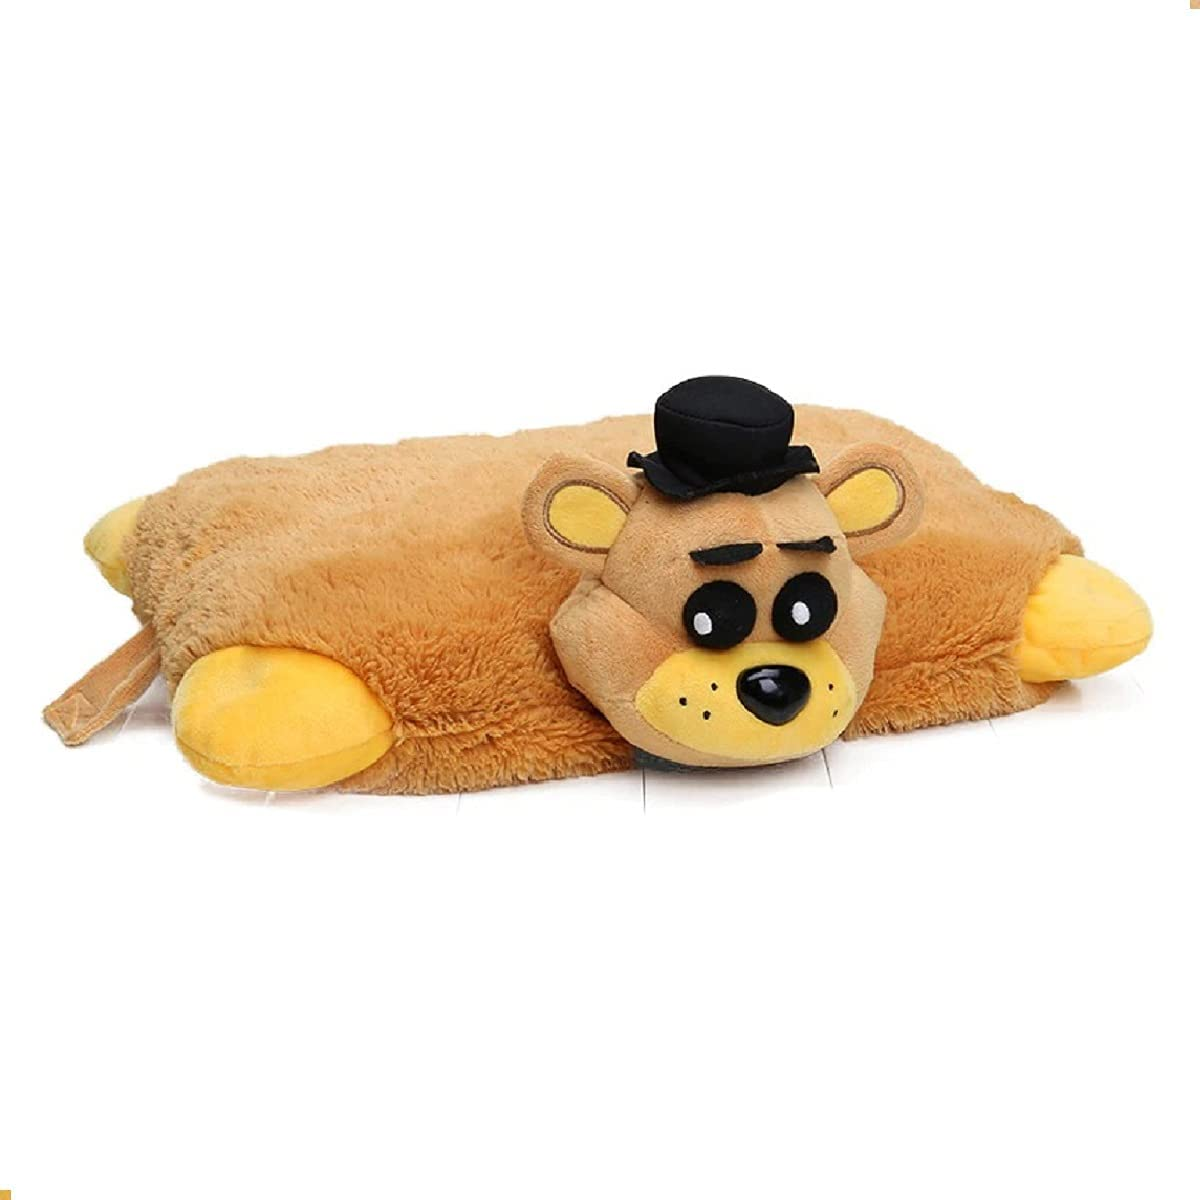 FNAF Golden Freddy Pillow Plush Genuine Free Shipping Five Nights depot Gol Freddy's Pets at